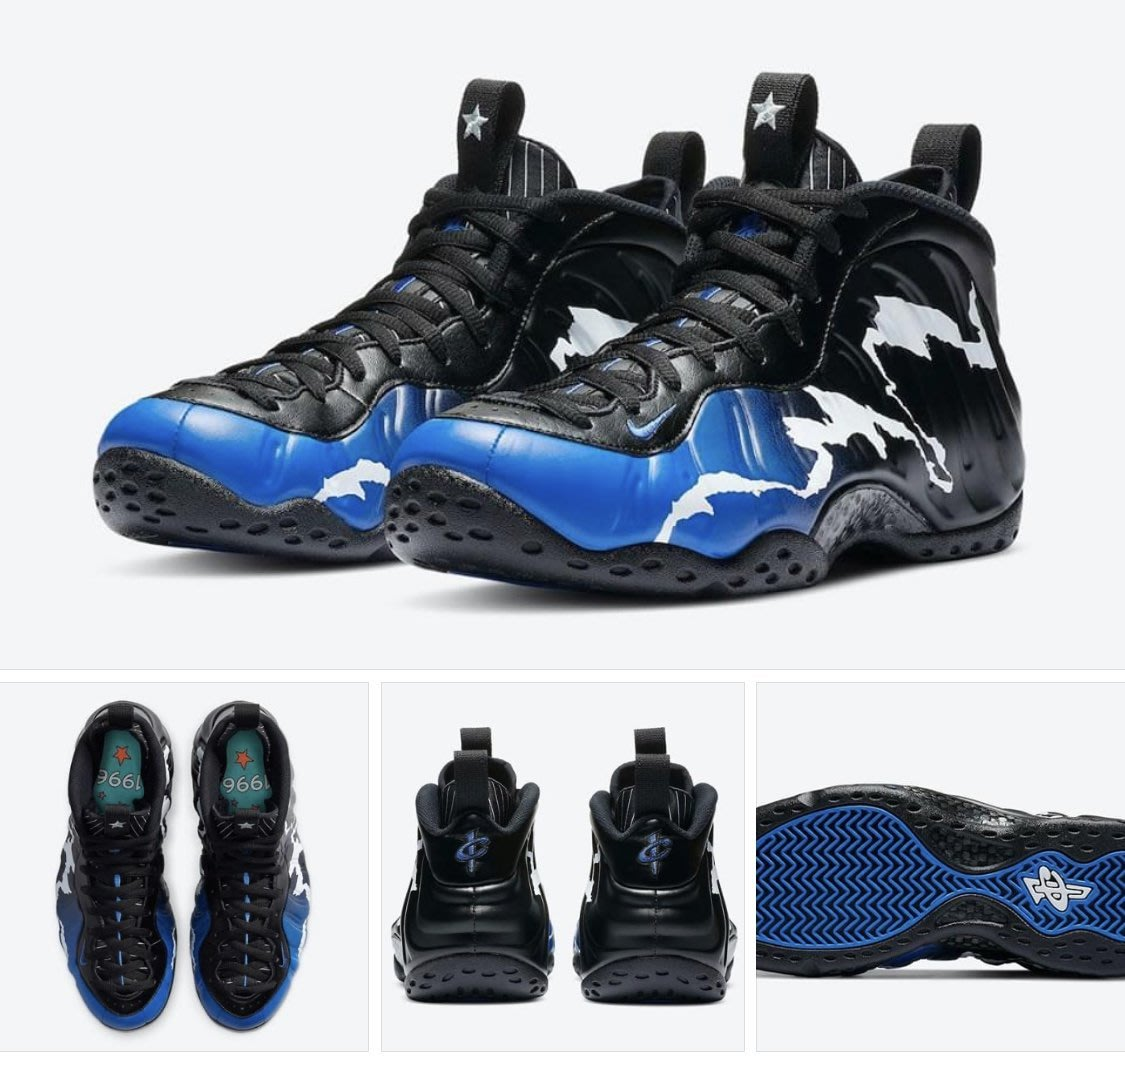 Nike Air Foamposite One Tianjin Shoes